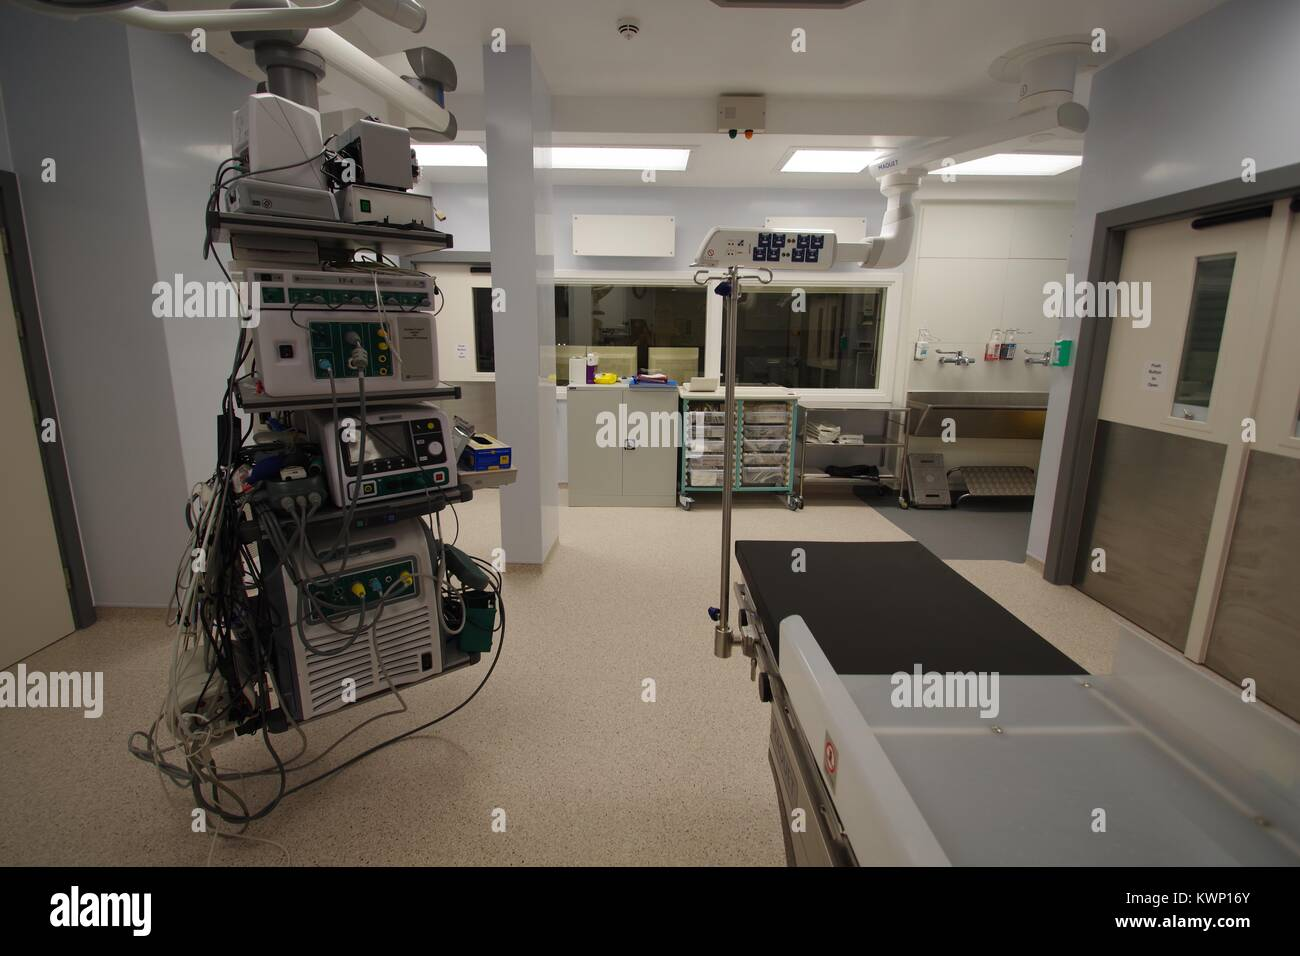 Advanced Operating Table in a Modern British Hospital Operating Theatre. December, 2017. - Stock Image